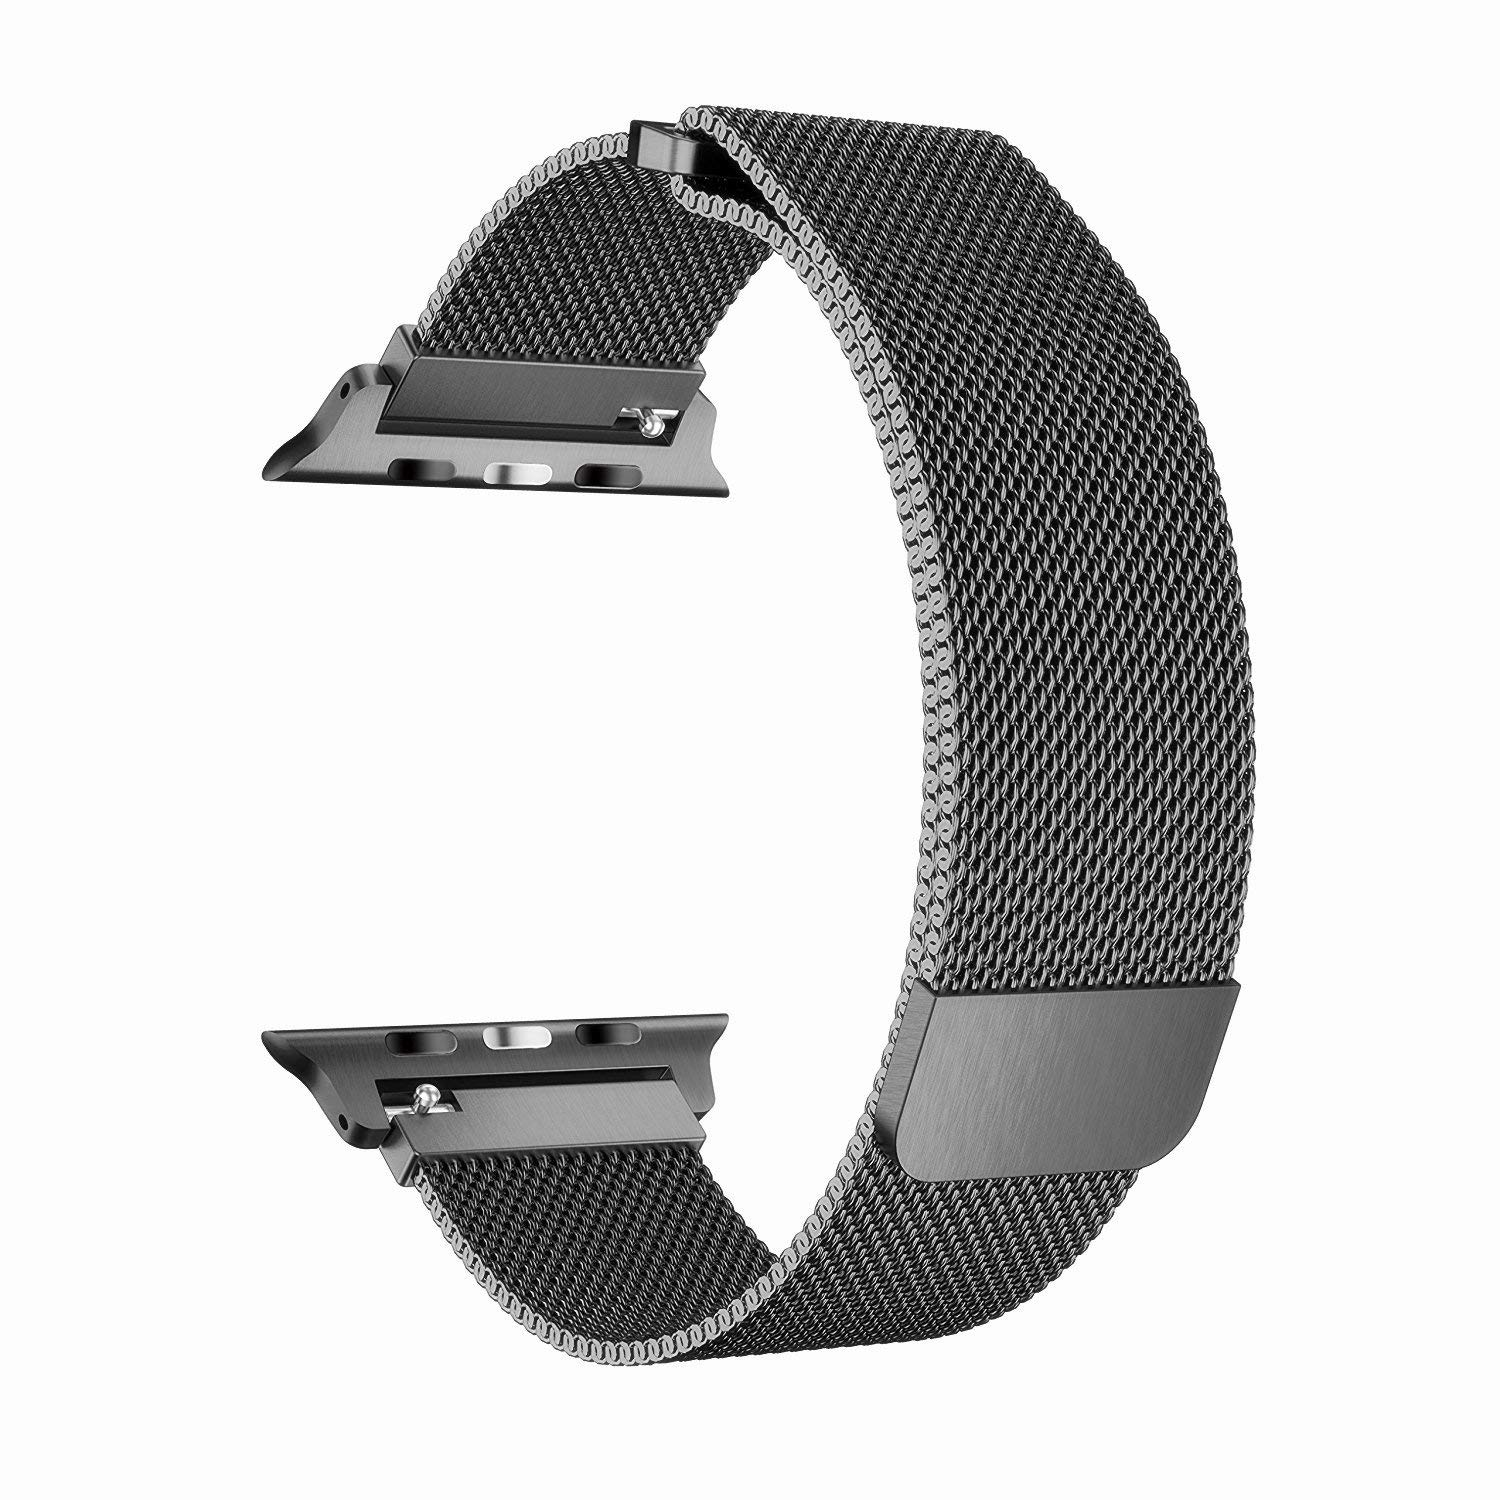 Apple Watch Band 42MM, Stainless Steel Mesh Milanese Loop with Adjustable Magnetic Closure with Clear Hard Case for Apple Watch Series 3 2 1 (42mm Black) - image 3 de 3